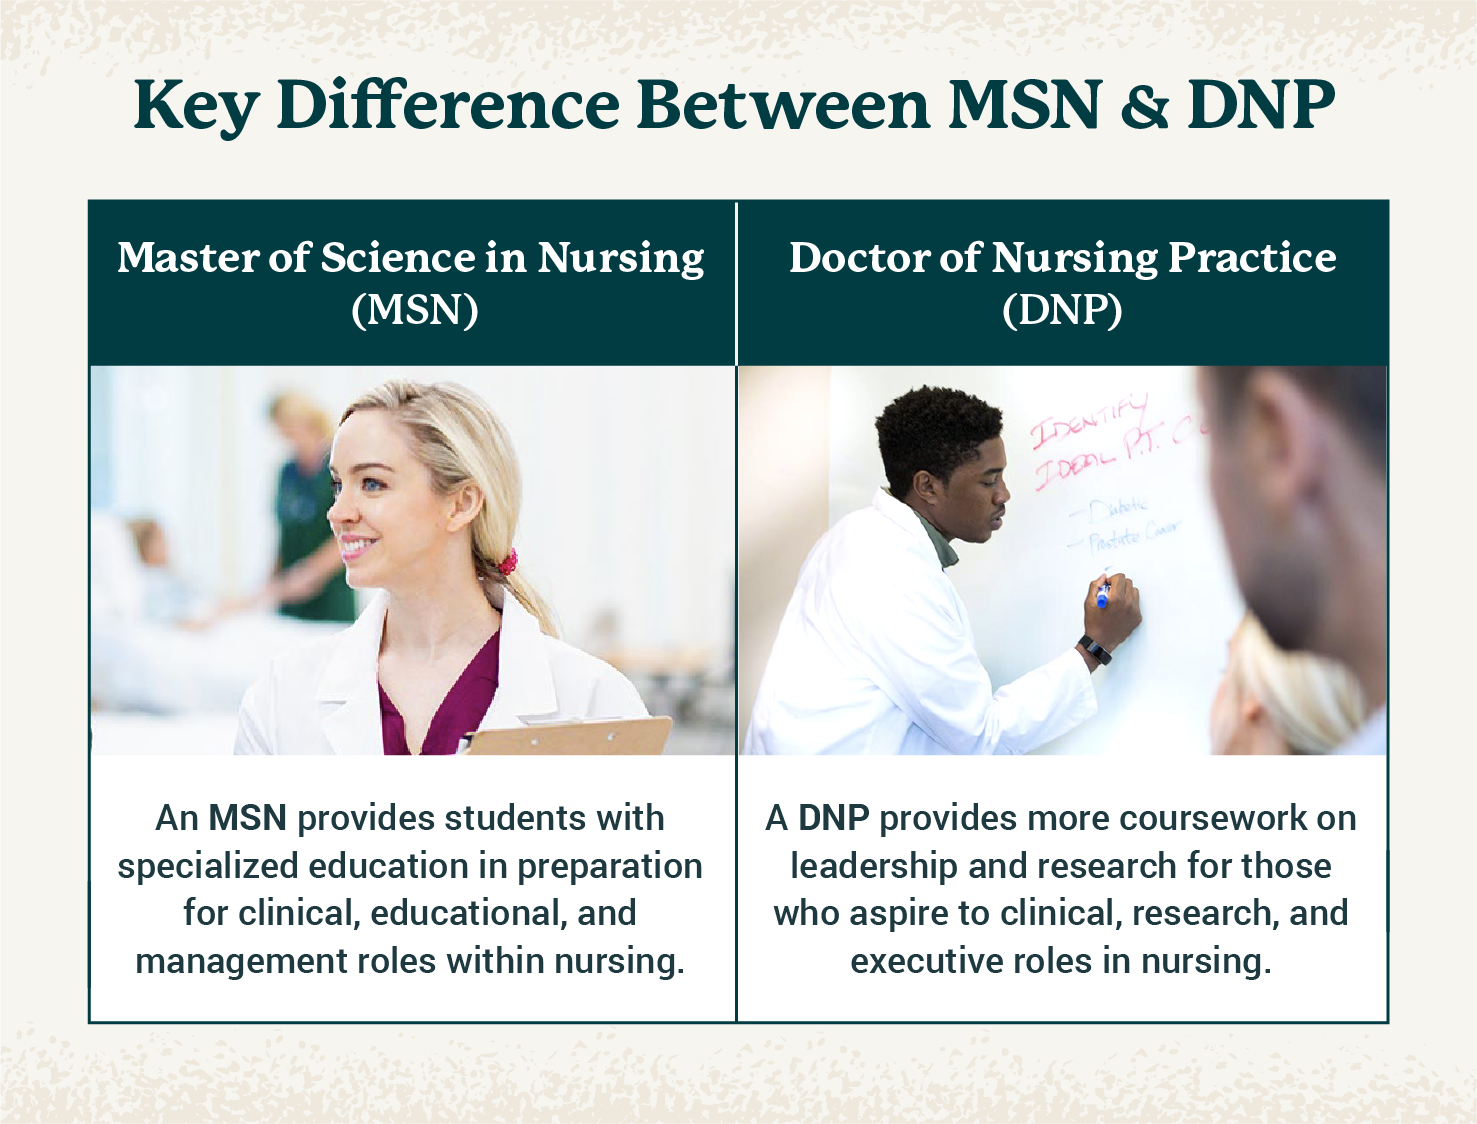 chart showing key difference between MSN and DPN